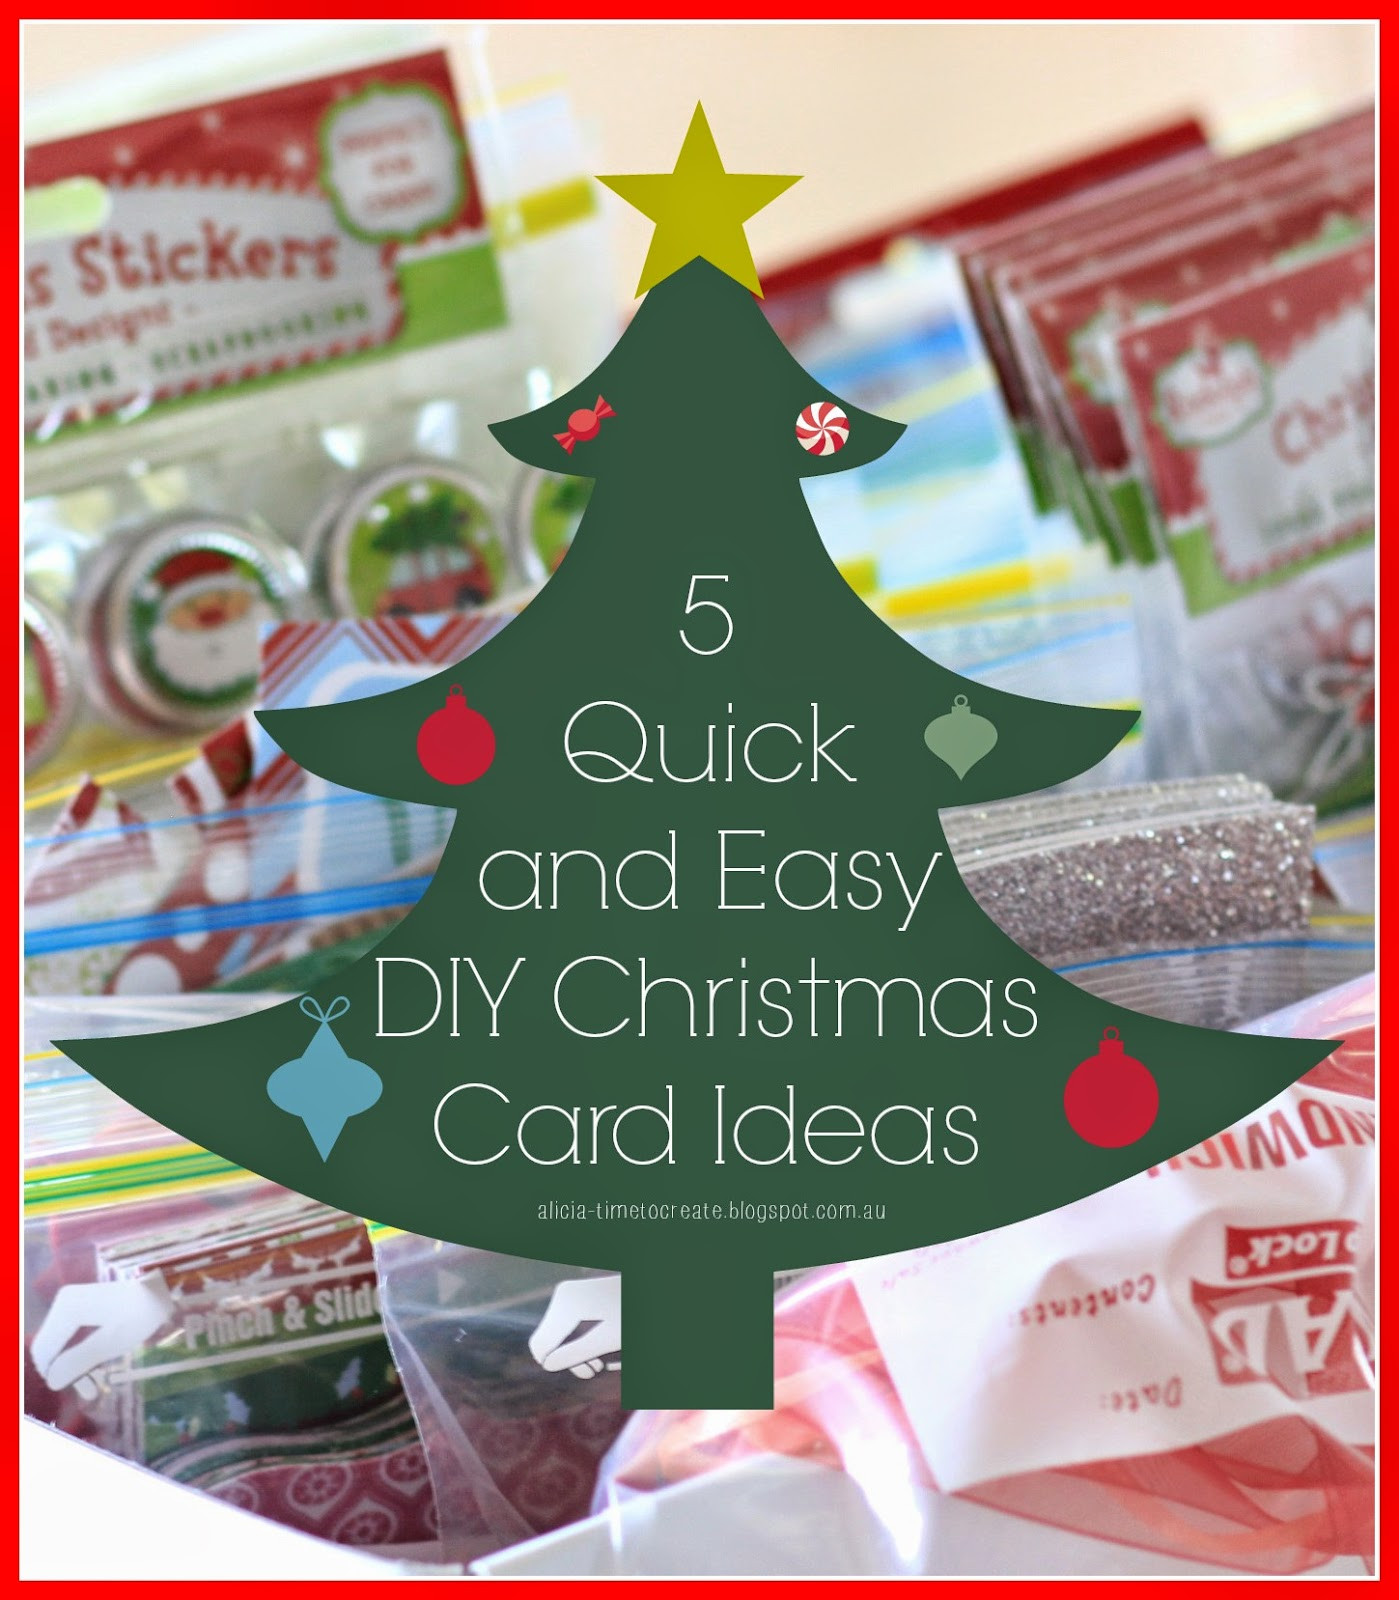 Best ideas about Easy DIY Christmas Cards . Save or Pin Time to Create 5 Quick and Easy DIY Christmas Card Ideas Now.